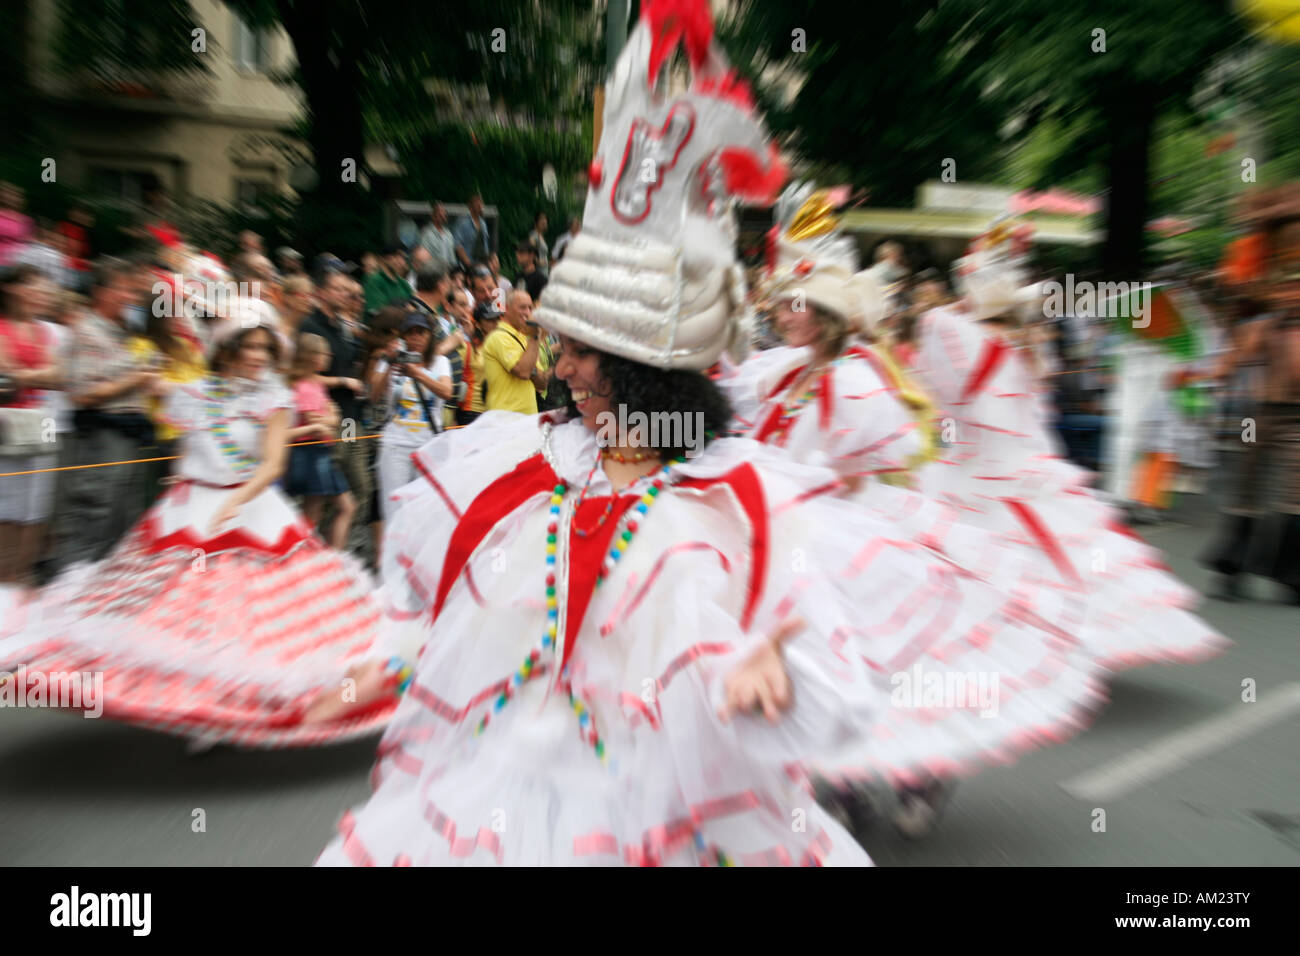 Carnaval des Cultures, Kreuzberg, Berlin, Allemagne Photo Stock